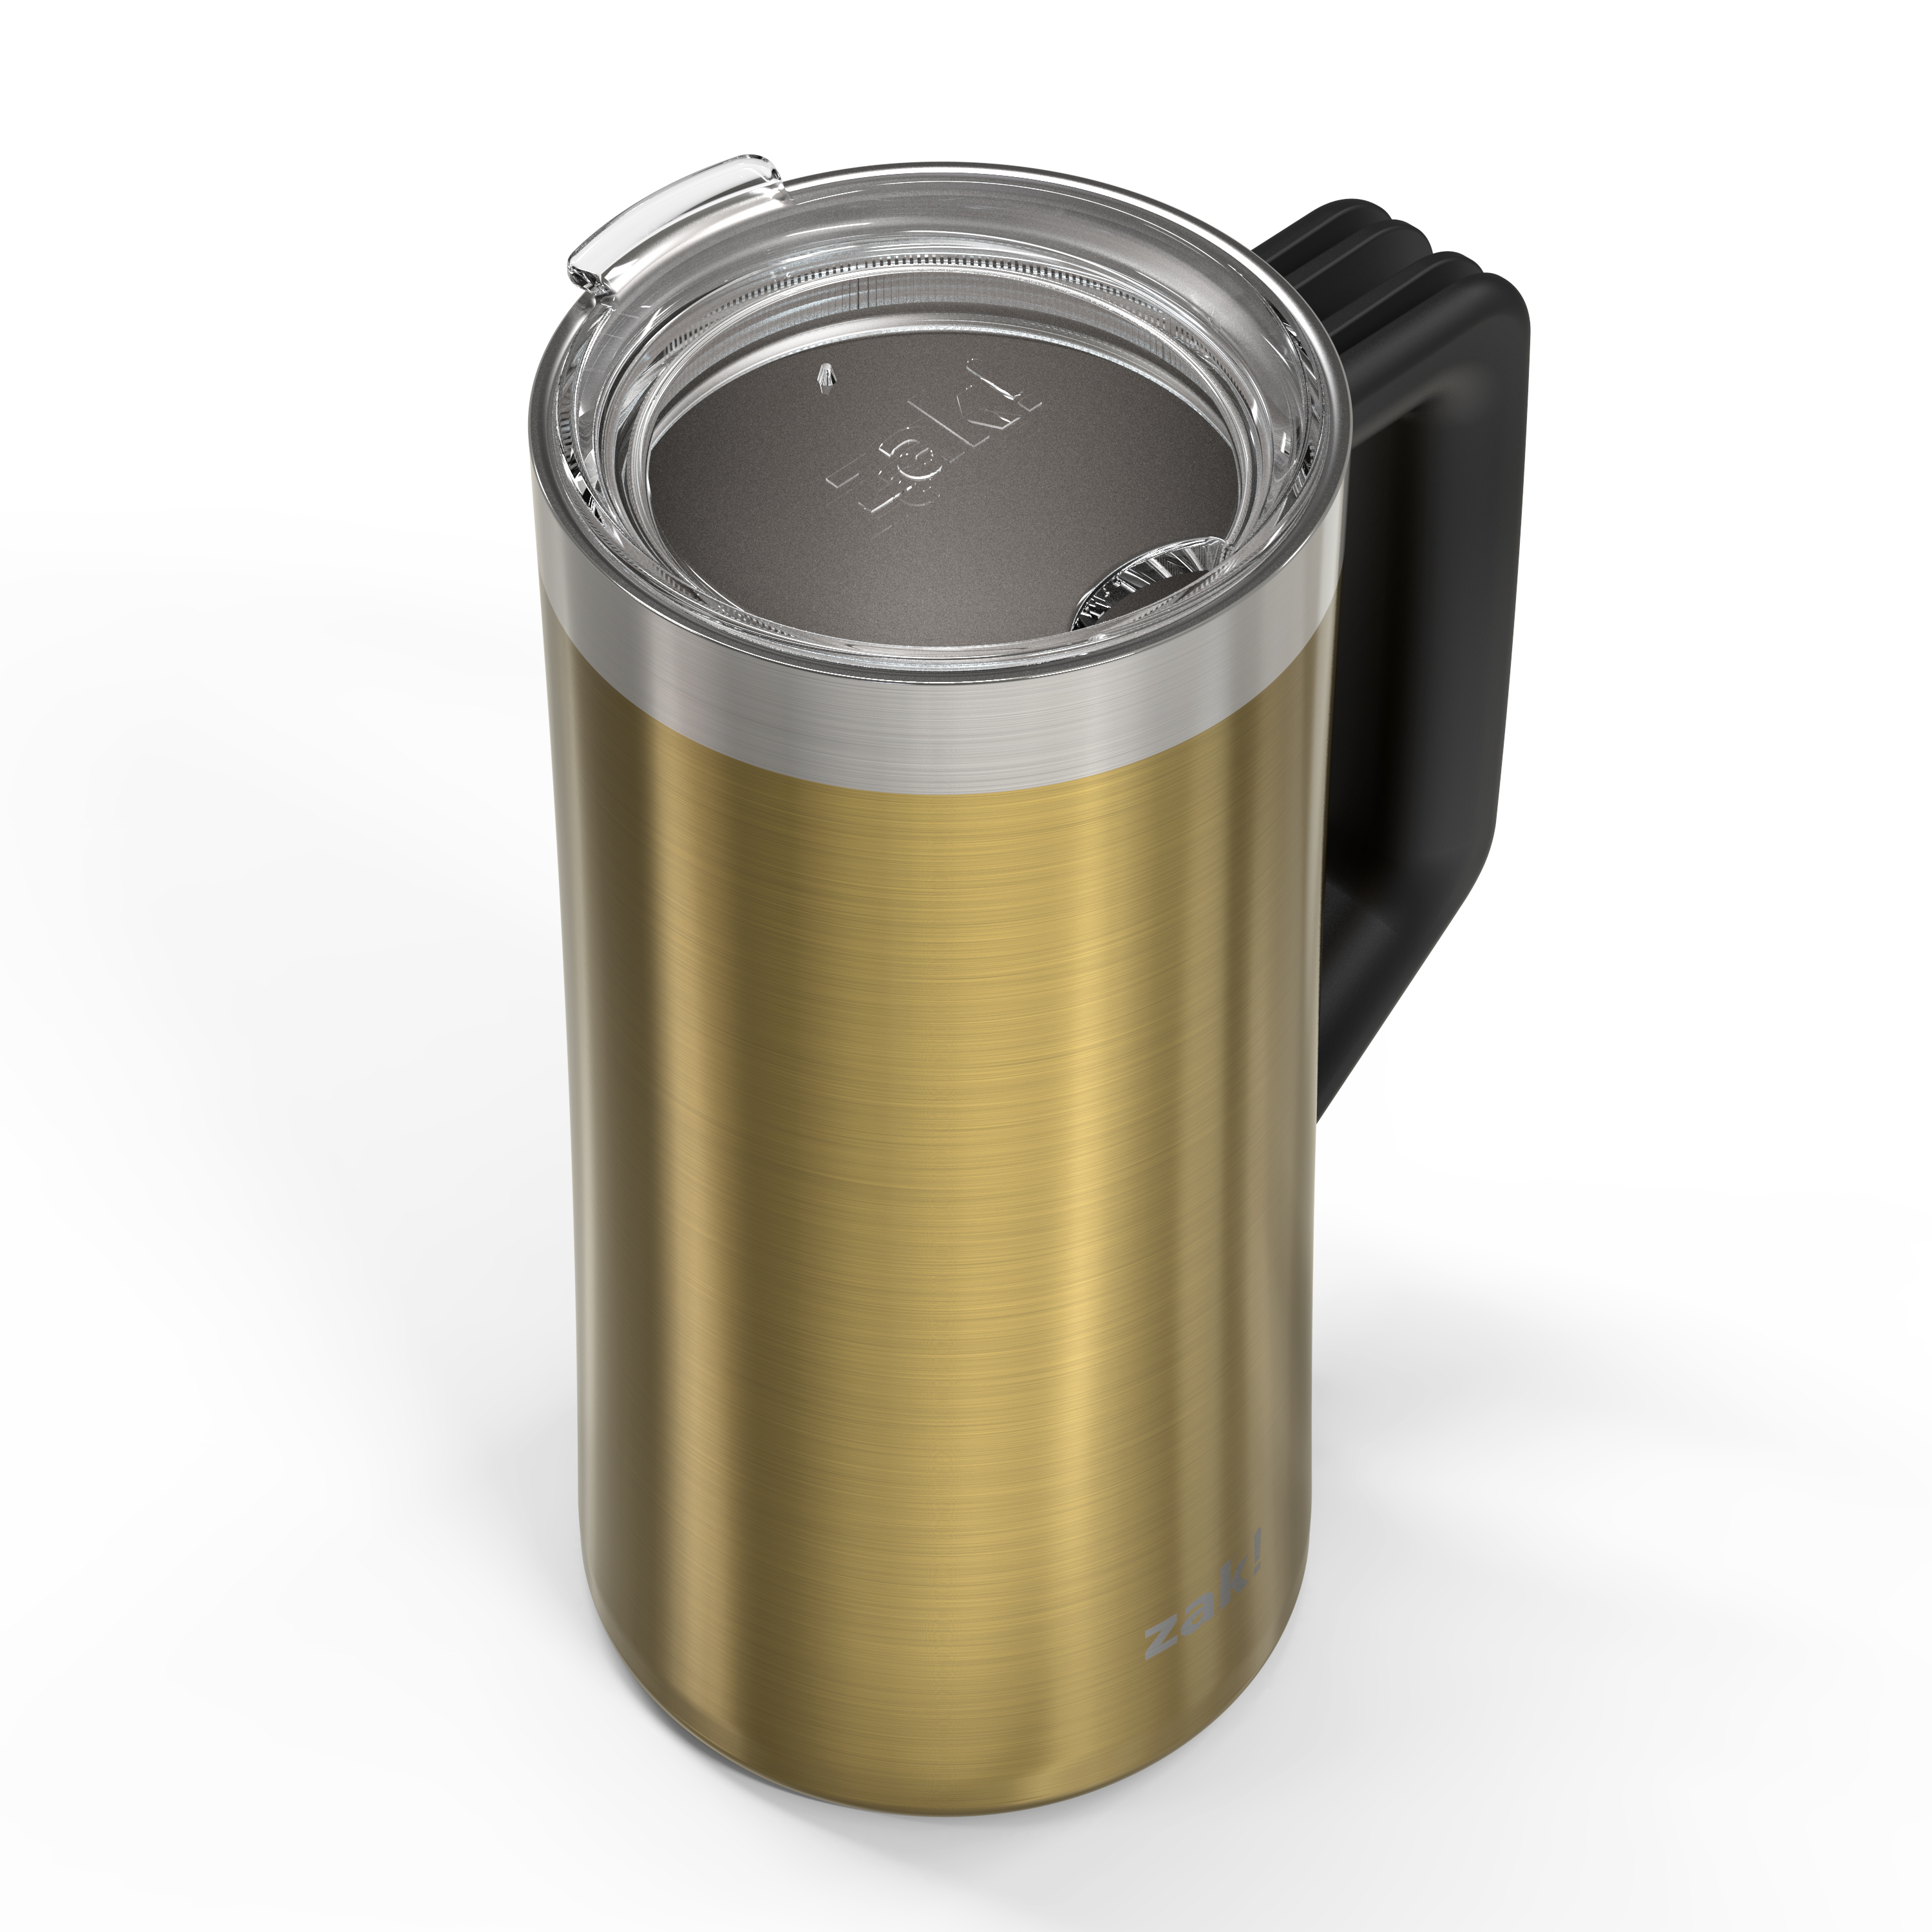 Creston 25 ounce Vacuum Insulated Stainless Steel Tumbler, Gold slideshow image 3